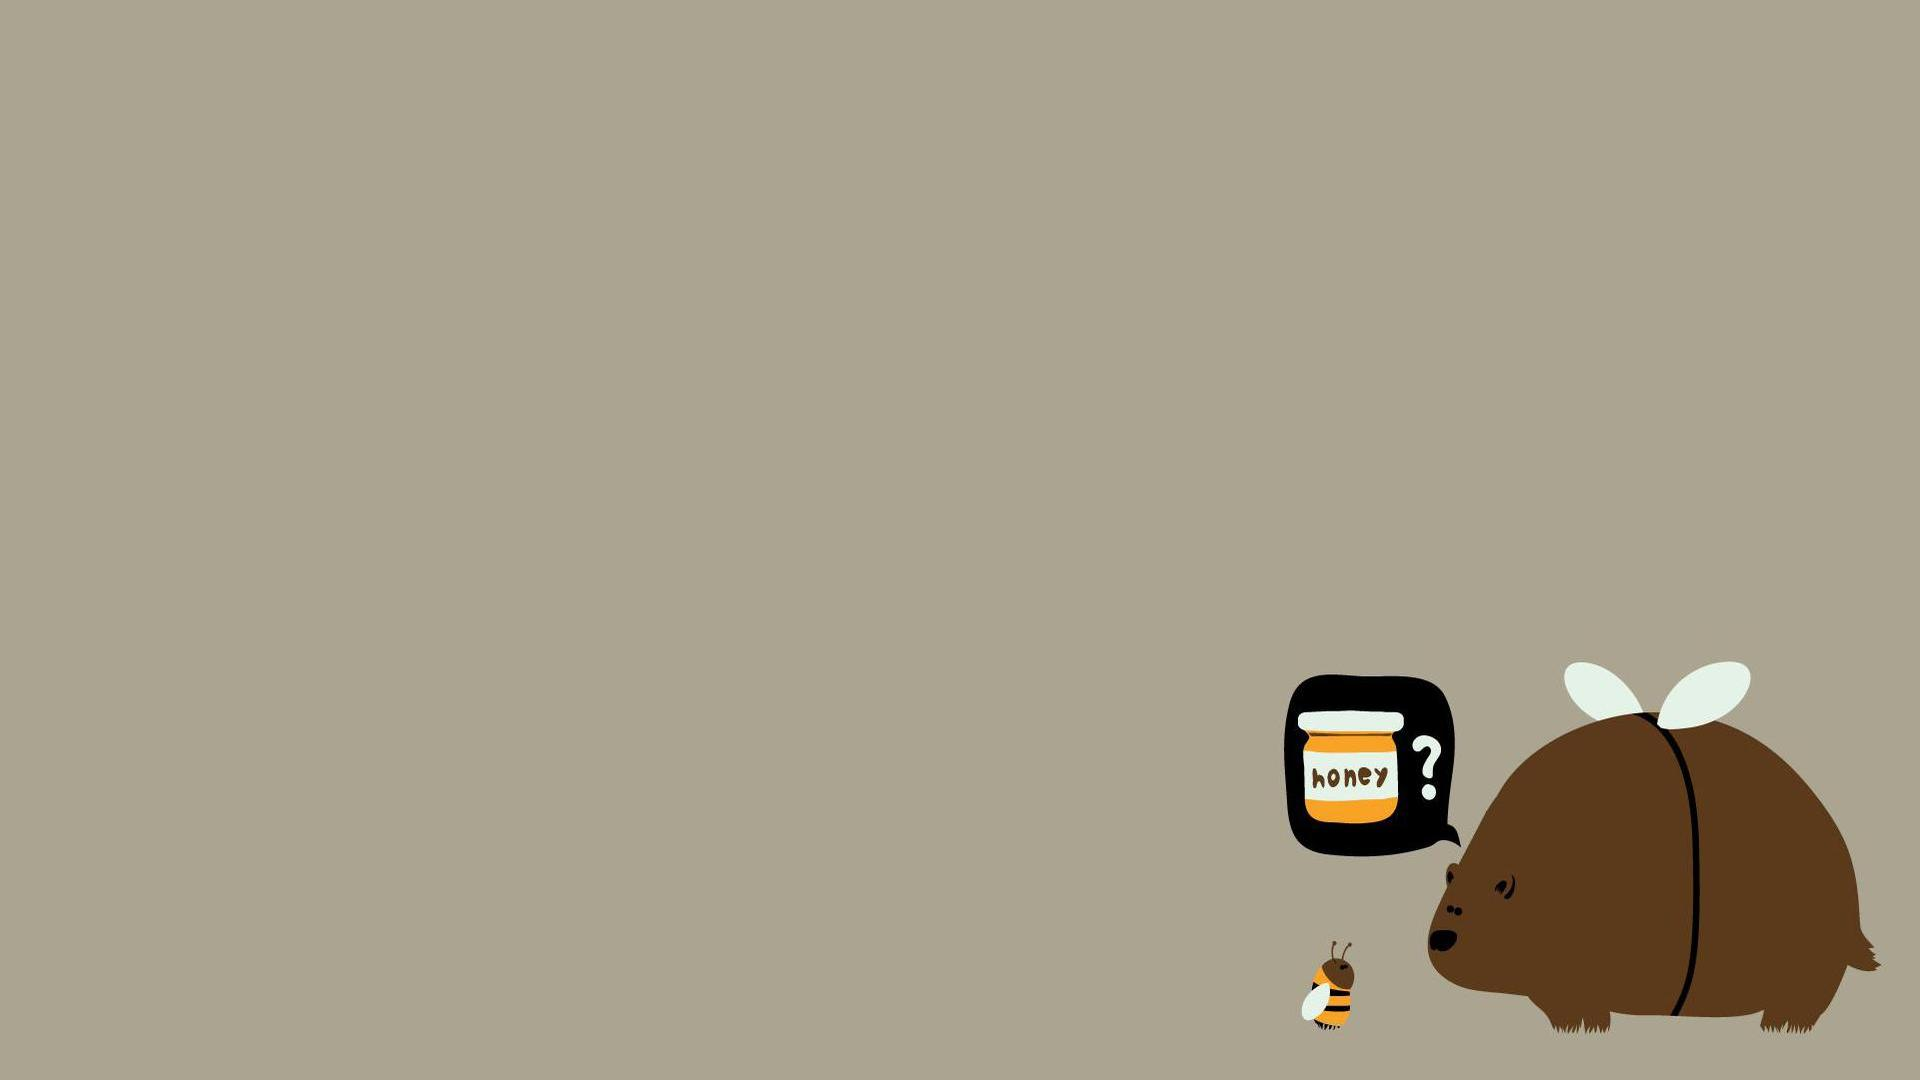 Cute Cartoon Penguin Wallpapers Other Hd Wallpaper Background Image 1920x1080 Id